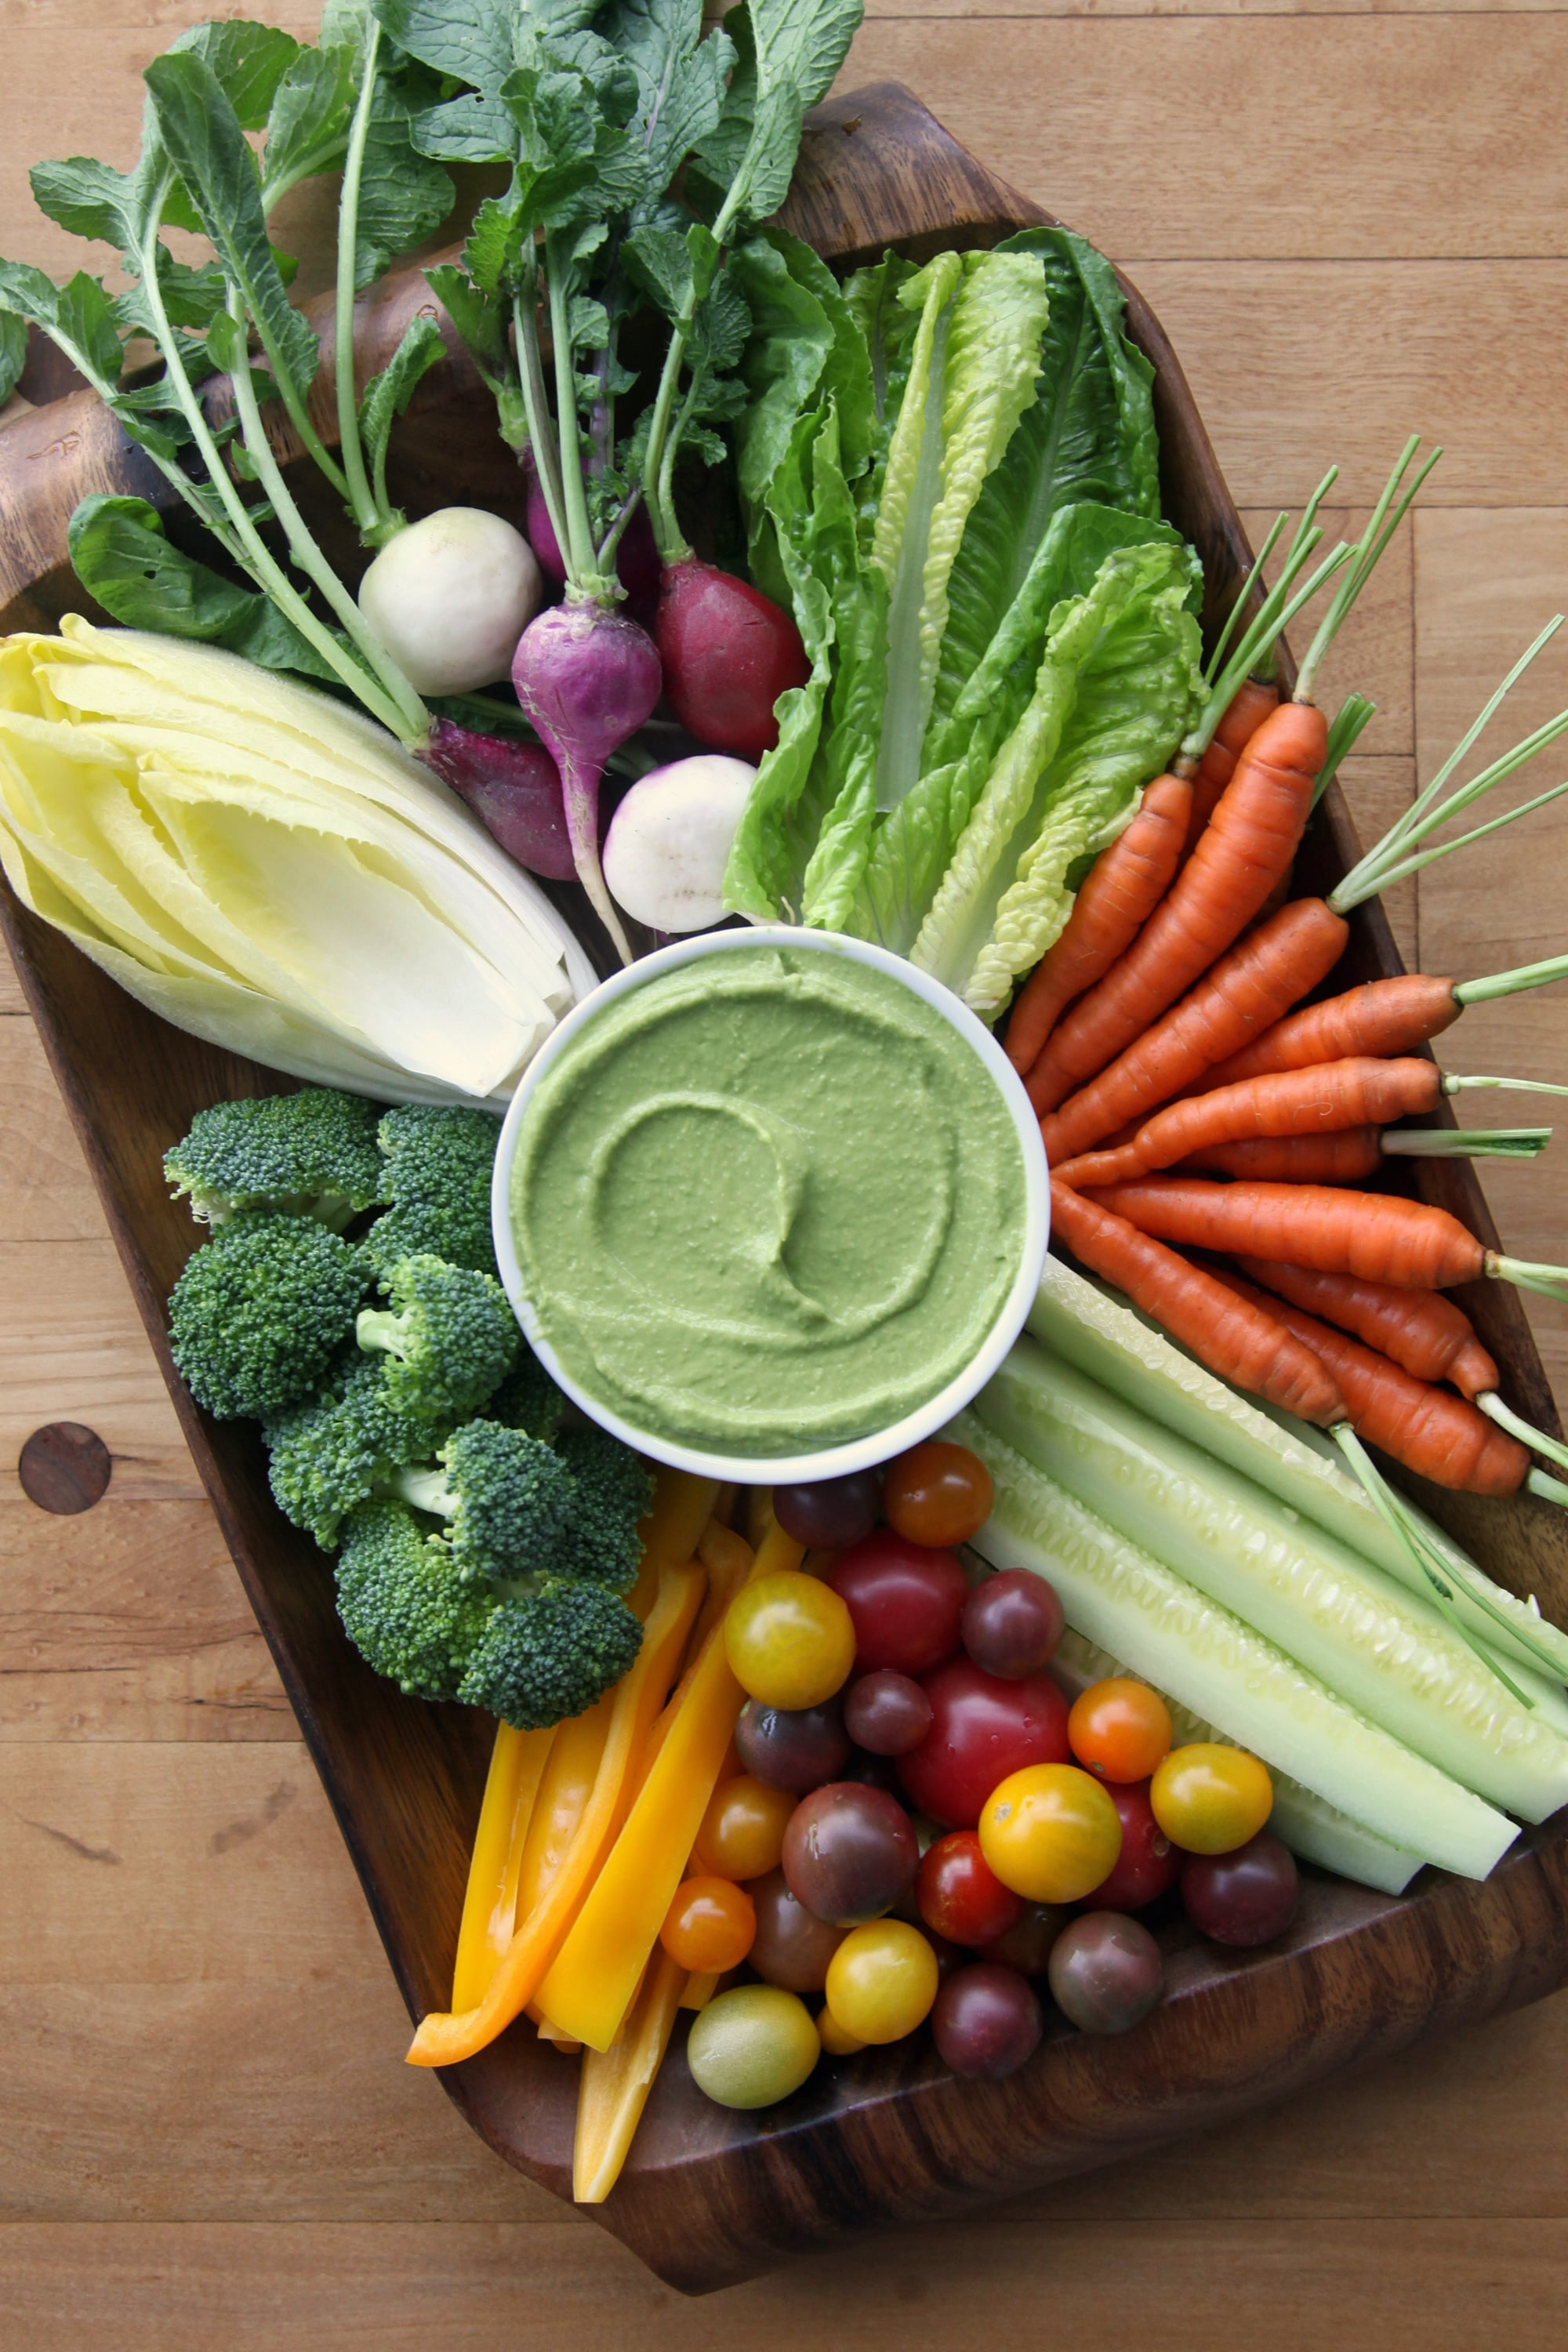 Discussion on this topic: Green Goddess Dip, green-goddess-dip/